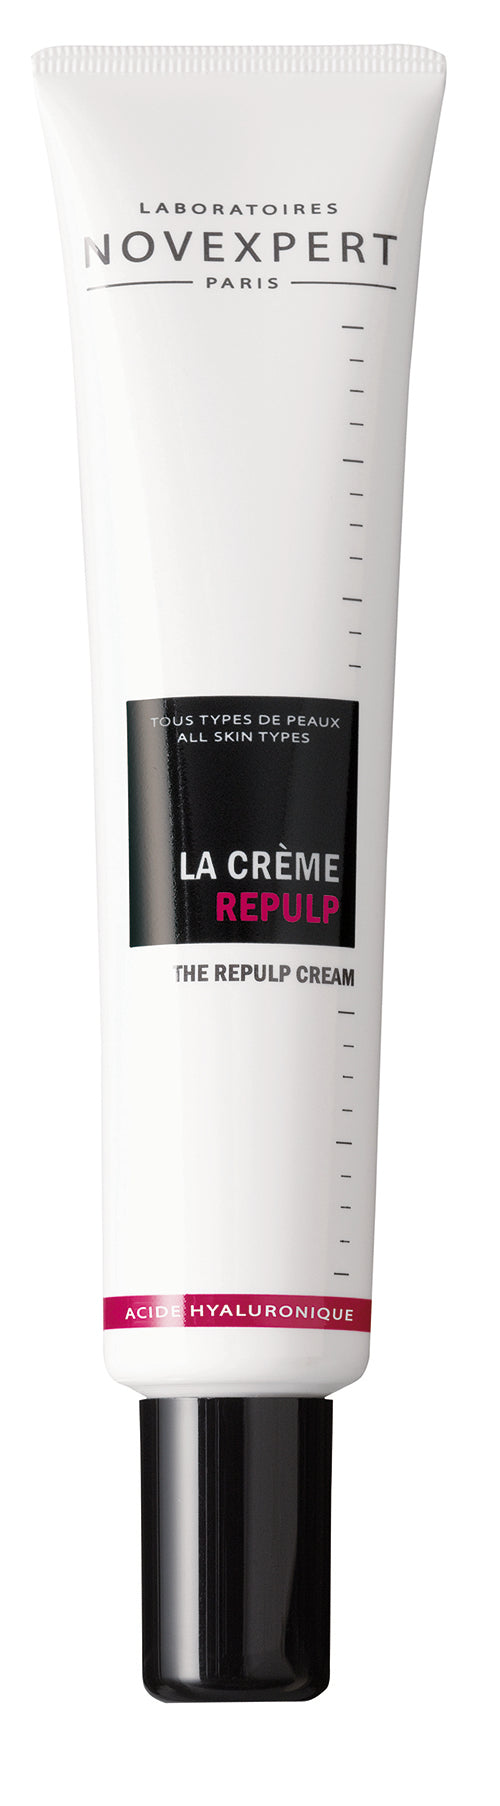 Novexpert The Repulp Cream - 40ml